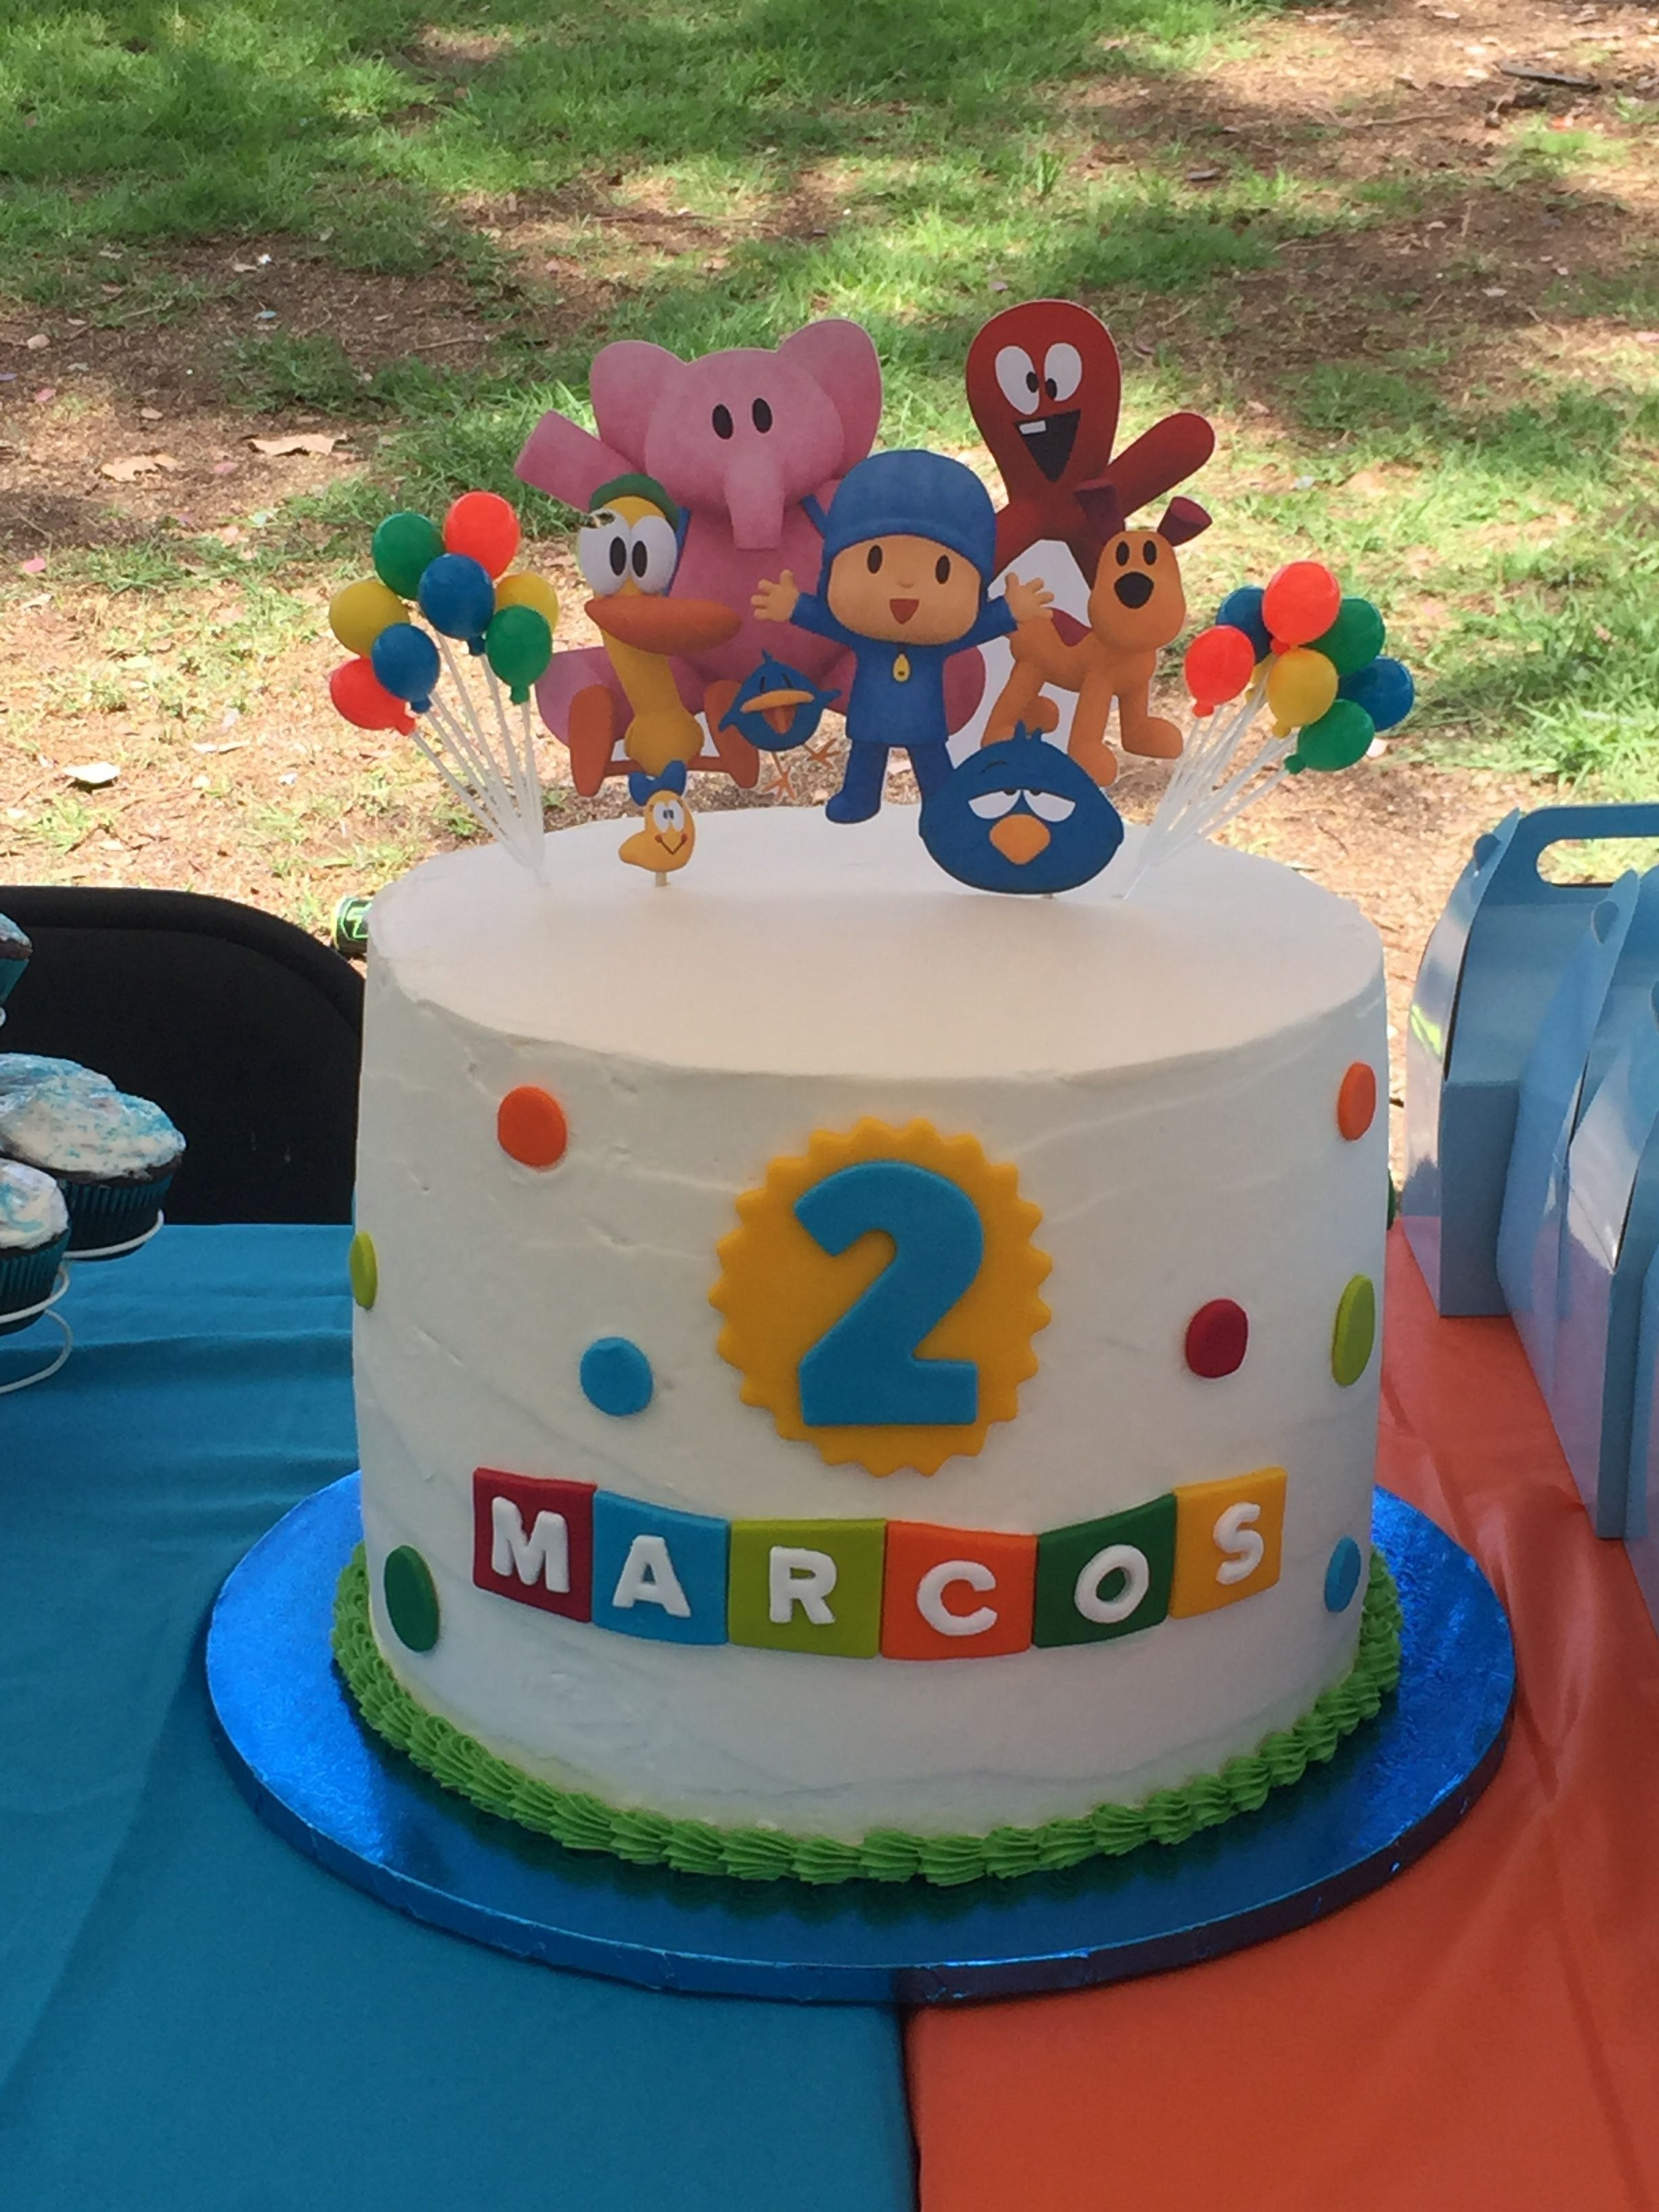 Tremendous 21 Great Picture Of Pocoyo Birthday Cake With Images Diy Funny Birthday Cards Online Elaedamsfinfo